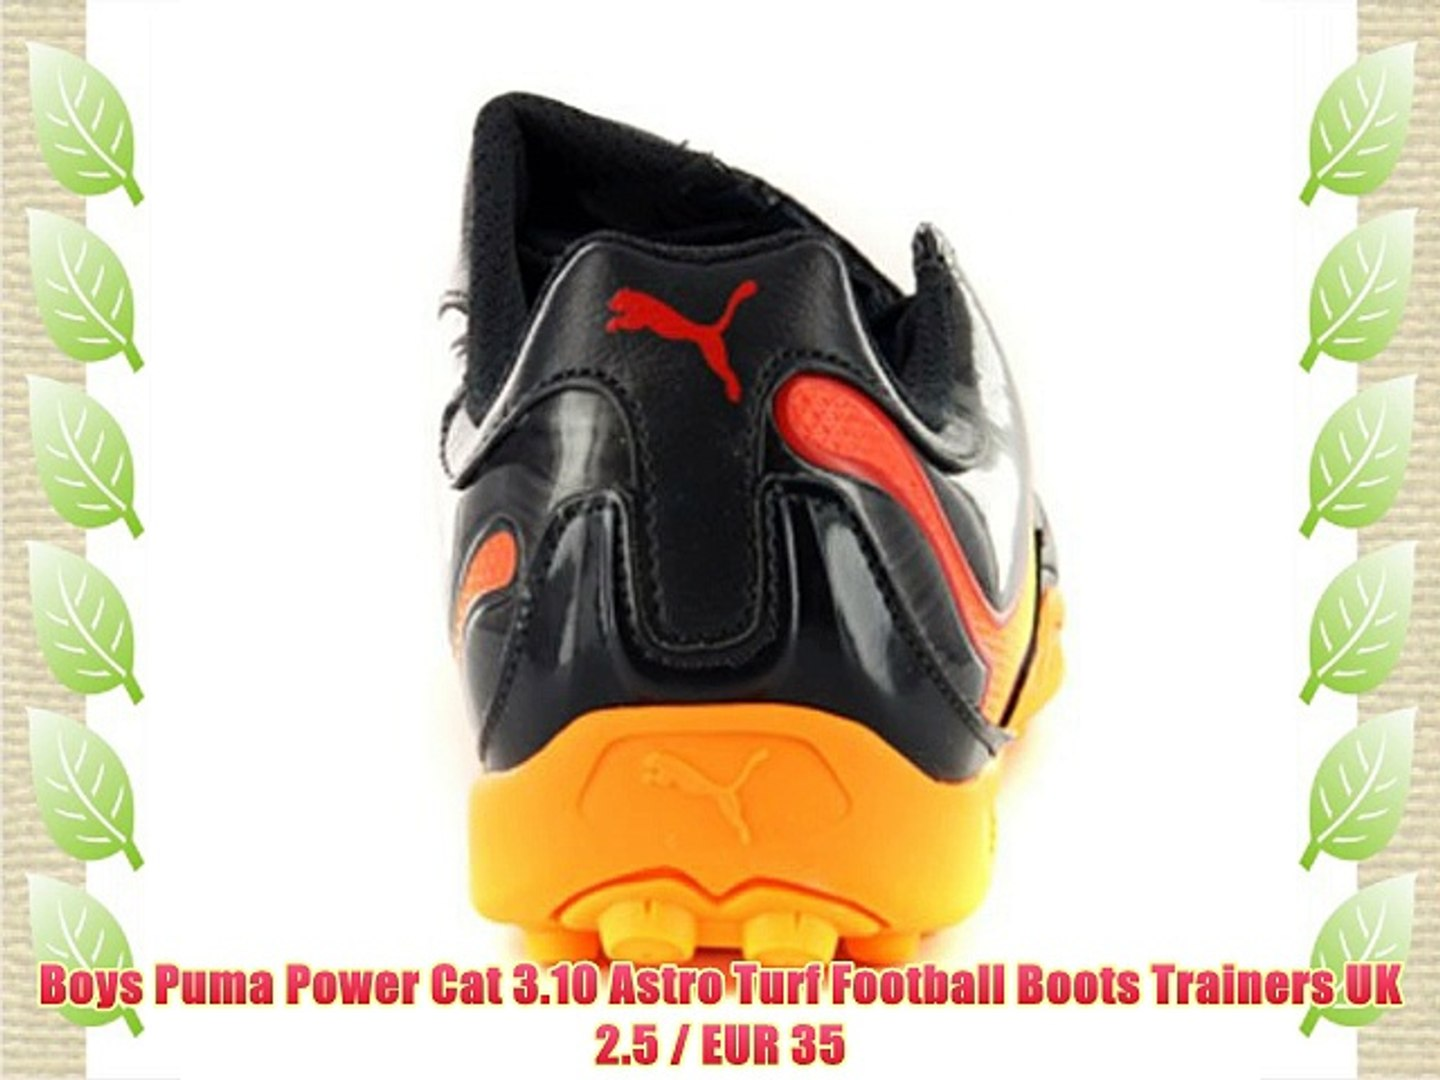 7281f2eac56c0 Boys Puma Power Cat 3.10 Astro Turf Football Boots Trainers UK 2.5 / EUR 35